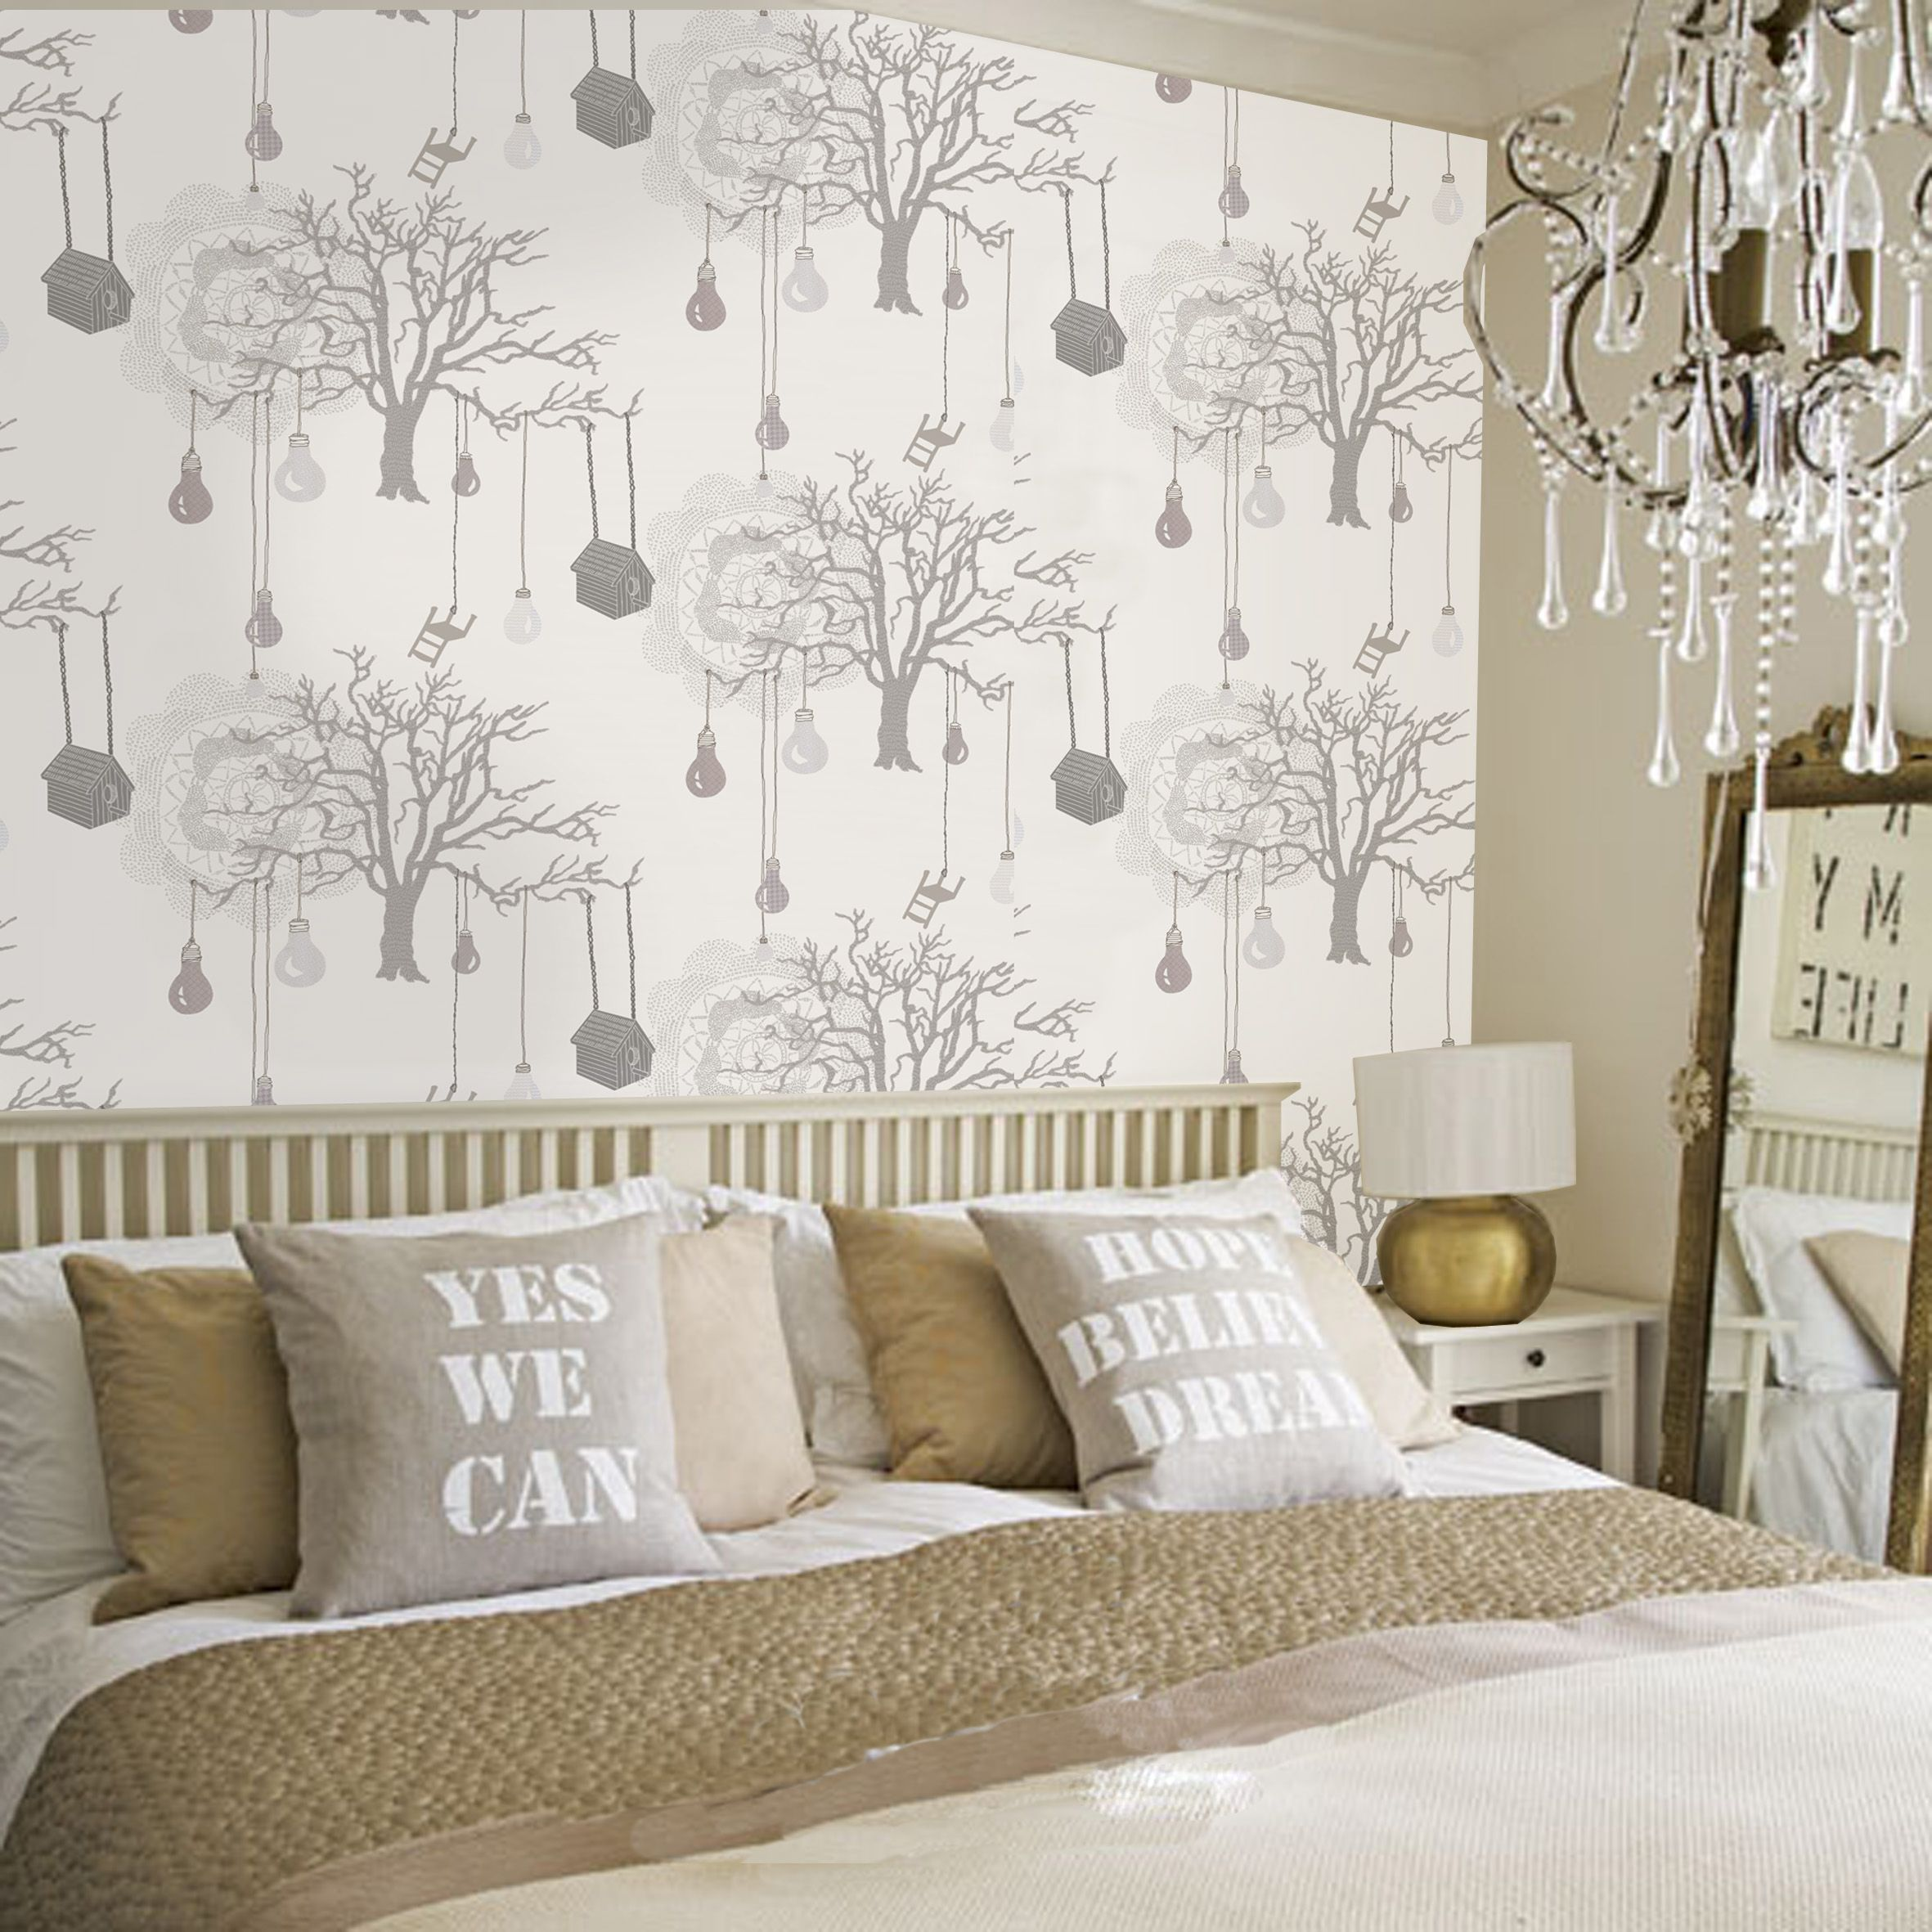 12 Best Diy Wallpaper Designs for Bedrooms UK 12  Wallpaper